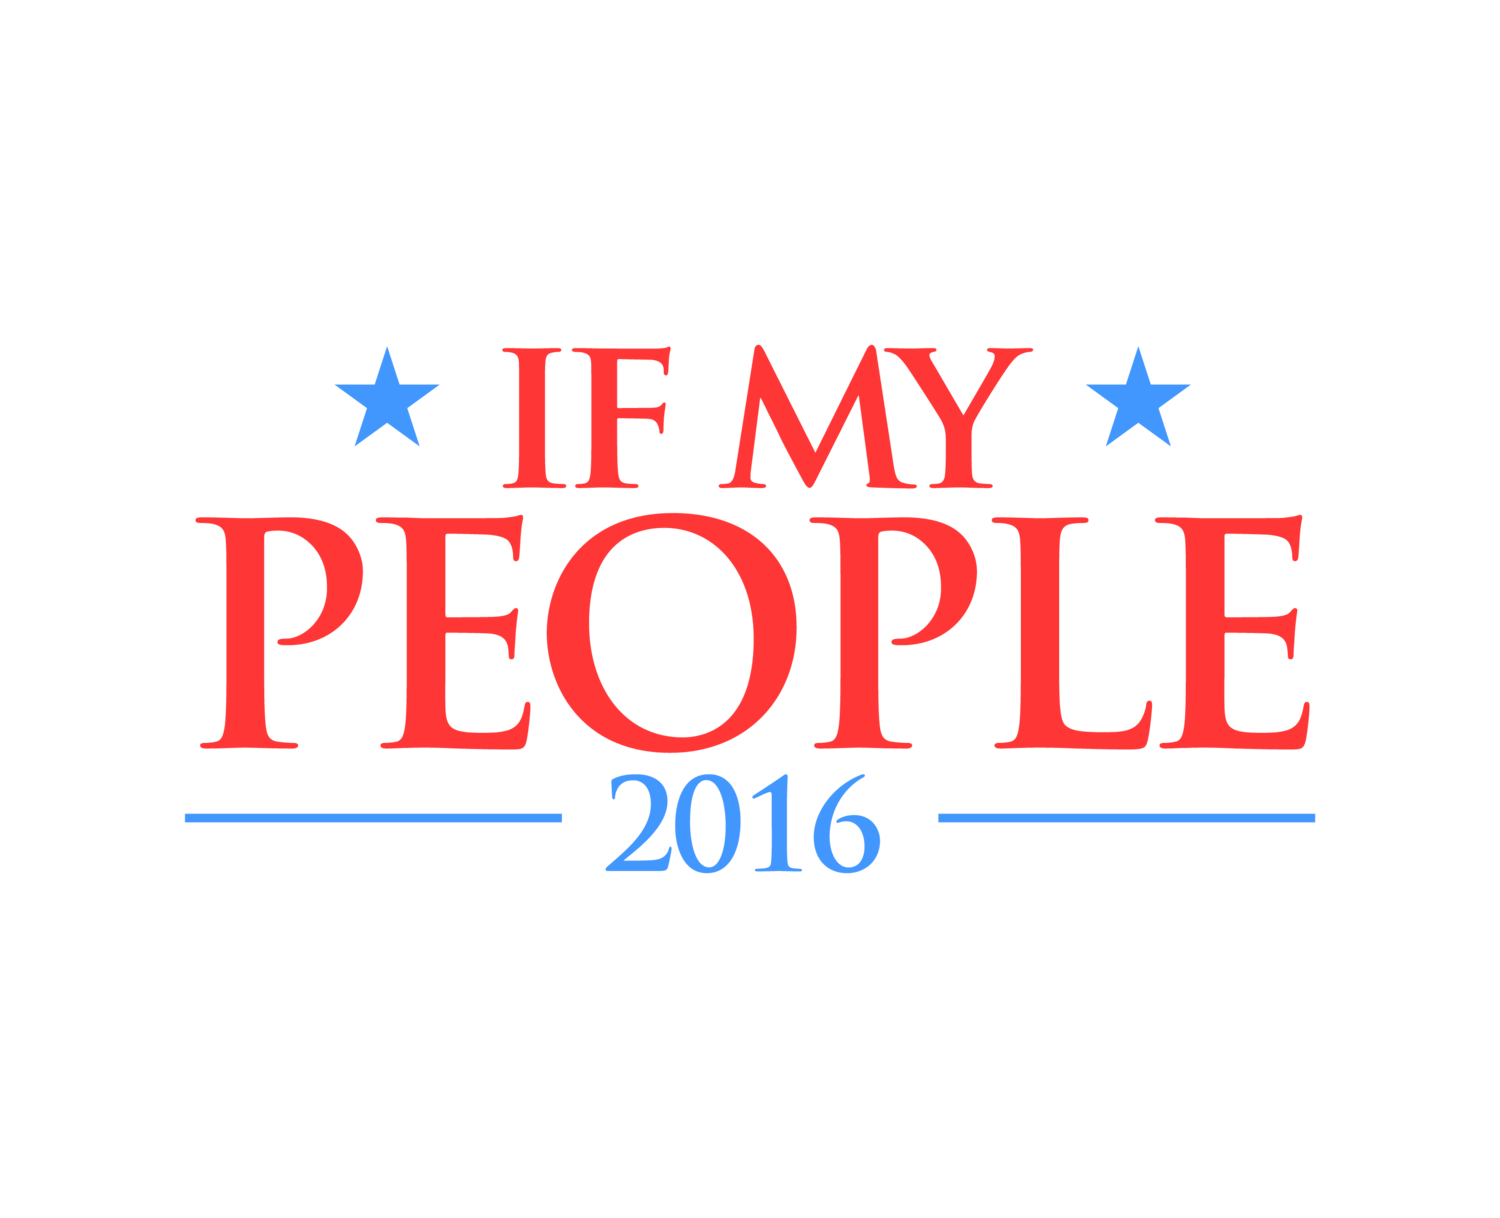 IF MY PEOPLE 2016